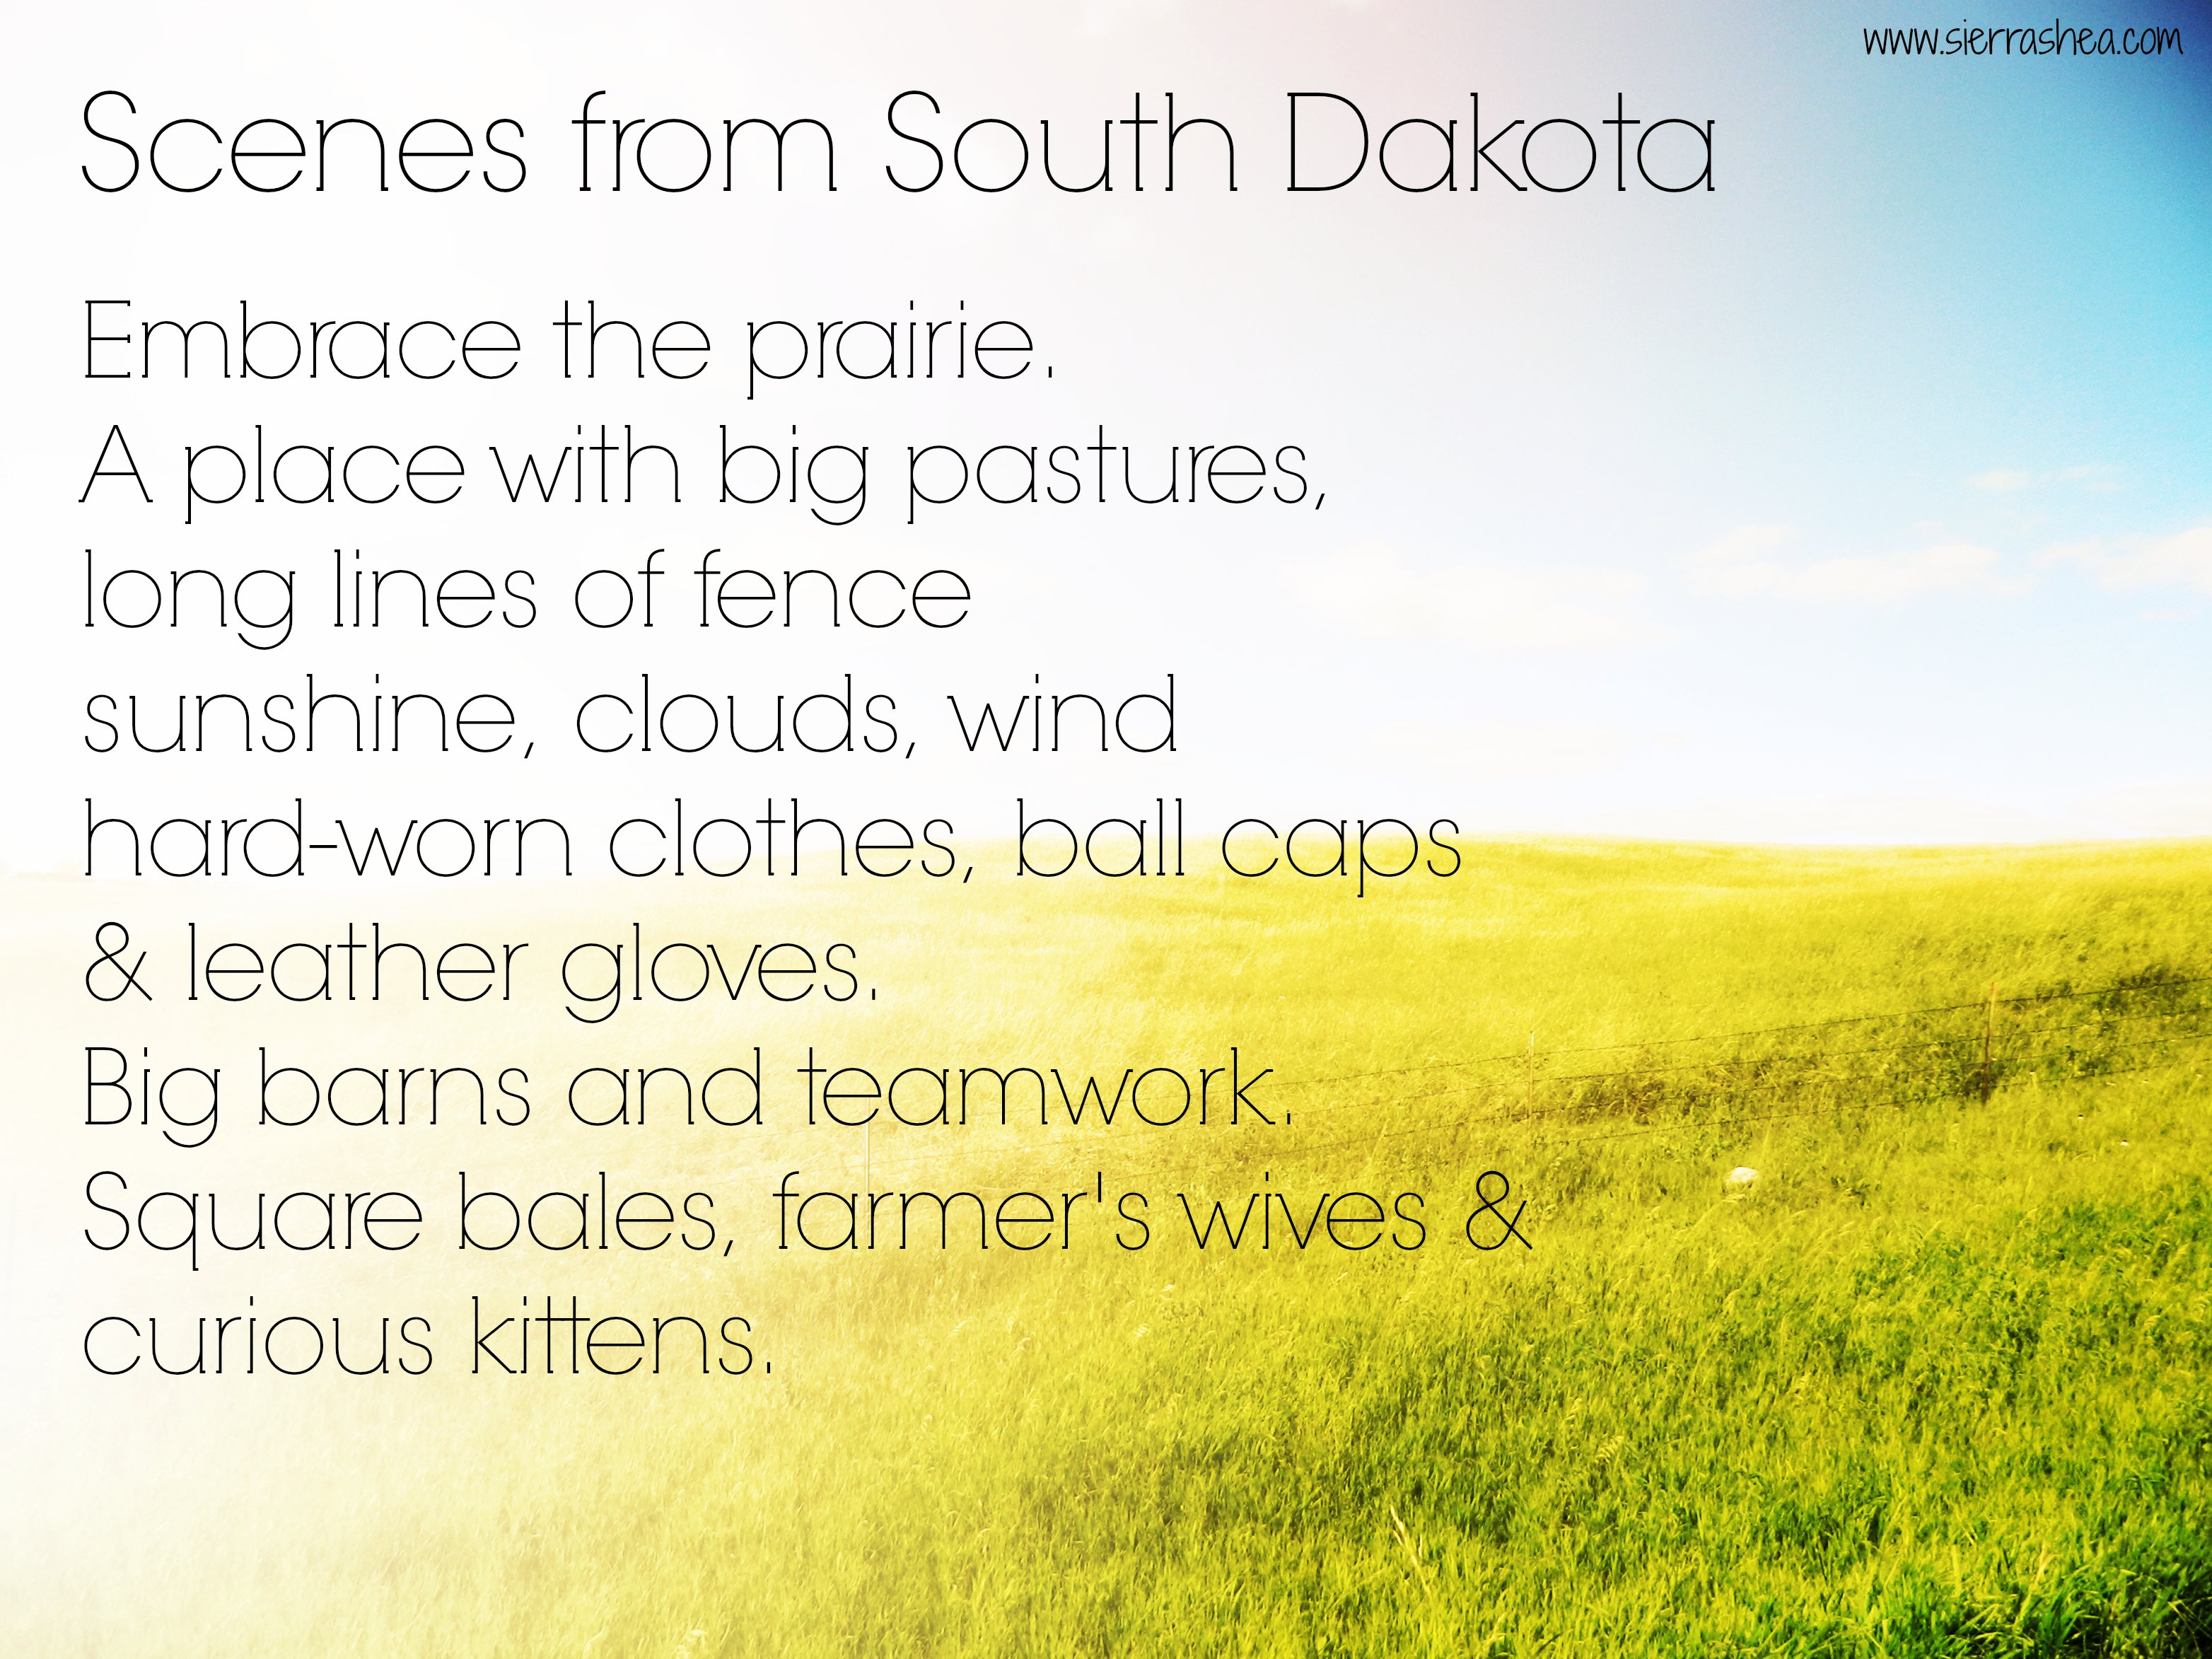 scenes from South Dakota